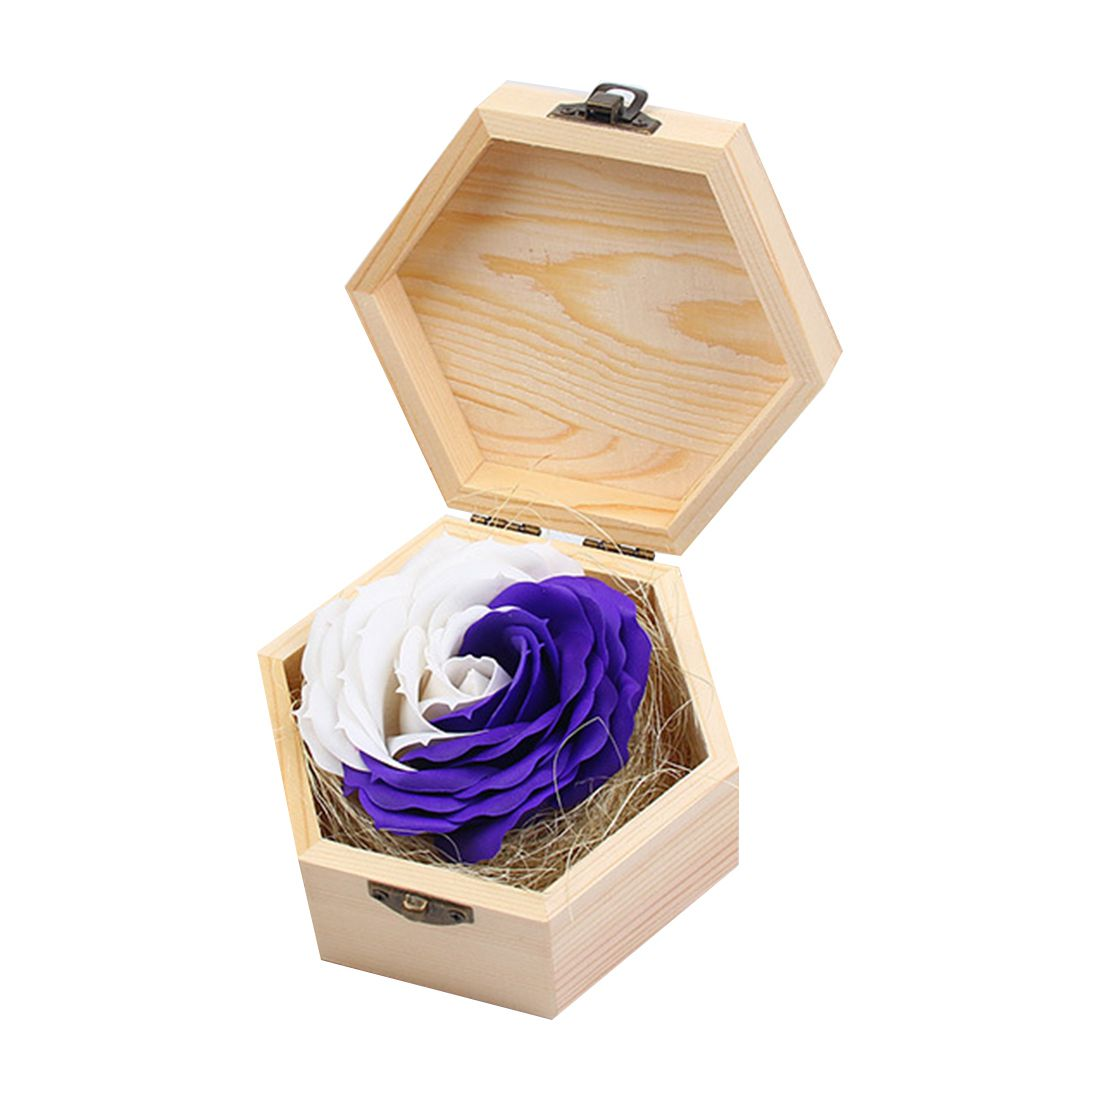 Soap Flowers Gifts box for birthday Gifts Teacher's Gifts(Purple+White)